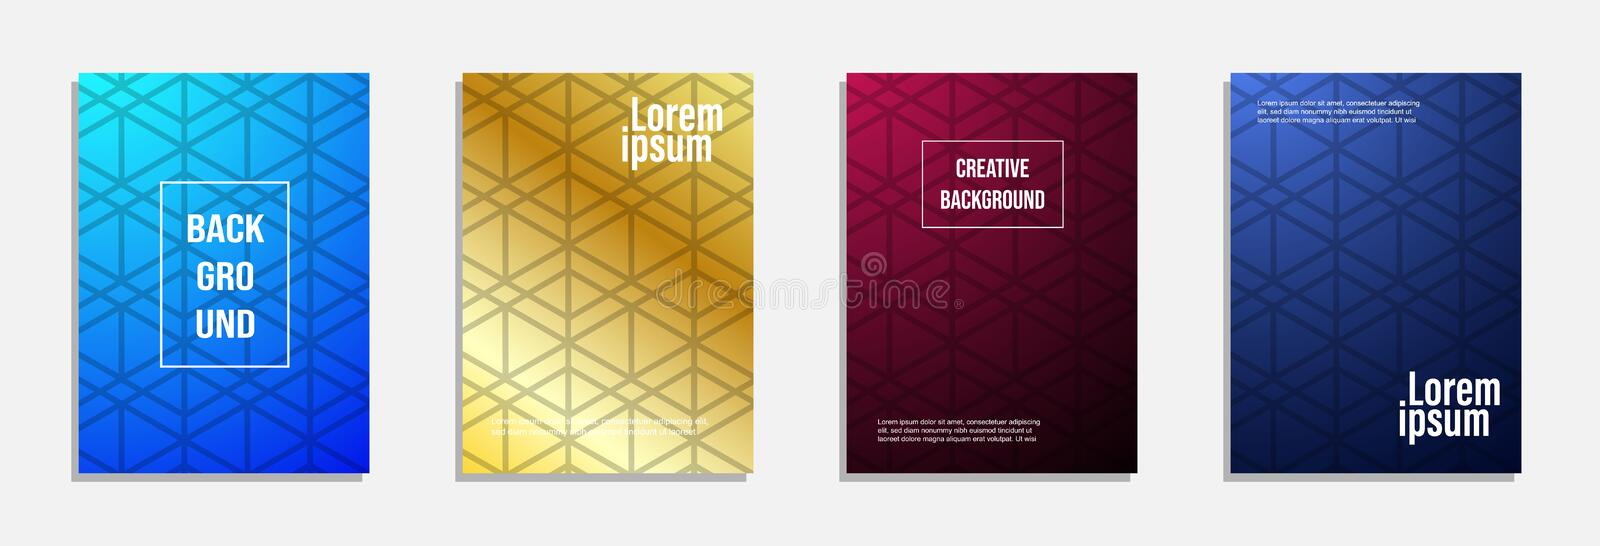 Colorful and modern cover design. Set of geometric pattern background. Design royalty free illustration